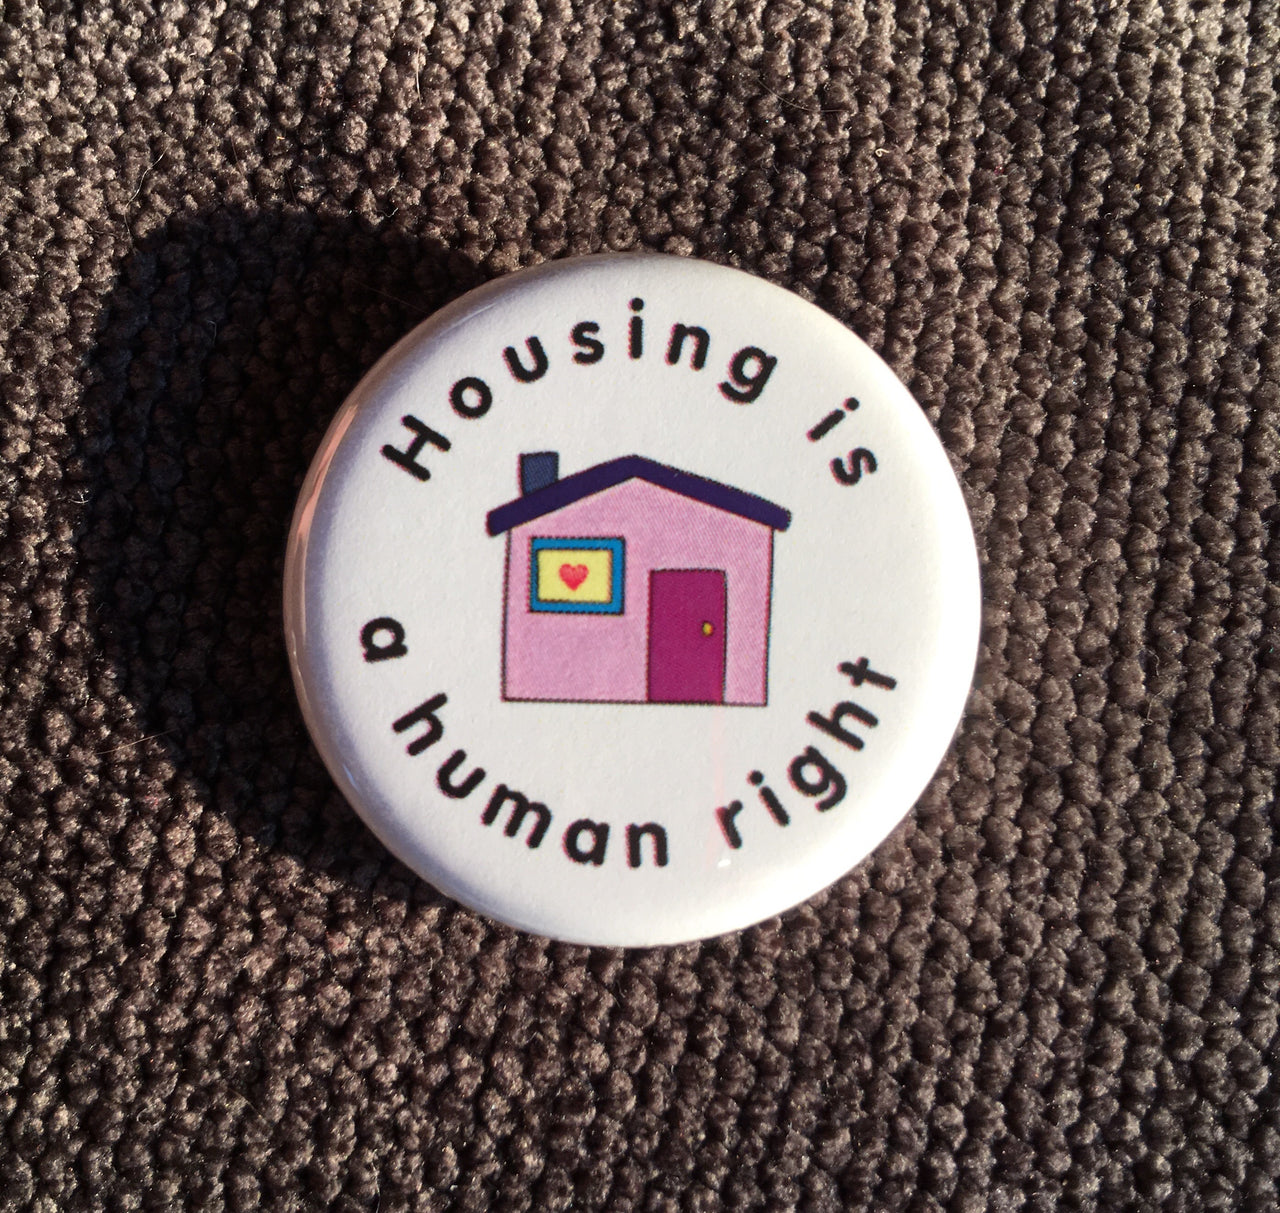 Housing is a human right - Radical Buttons